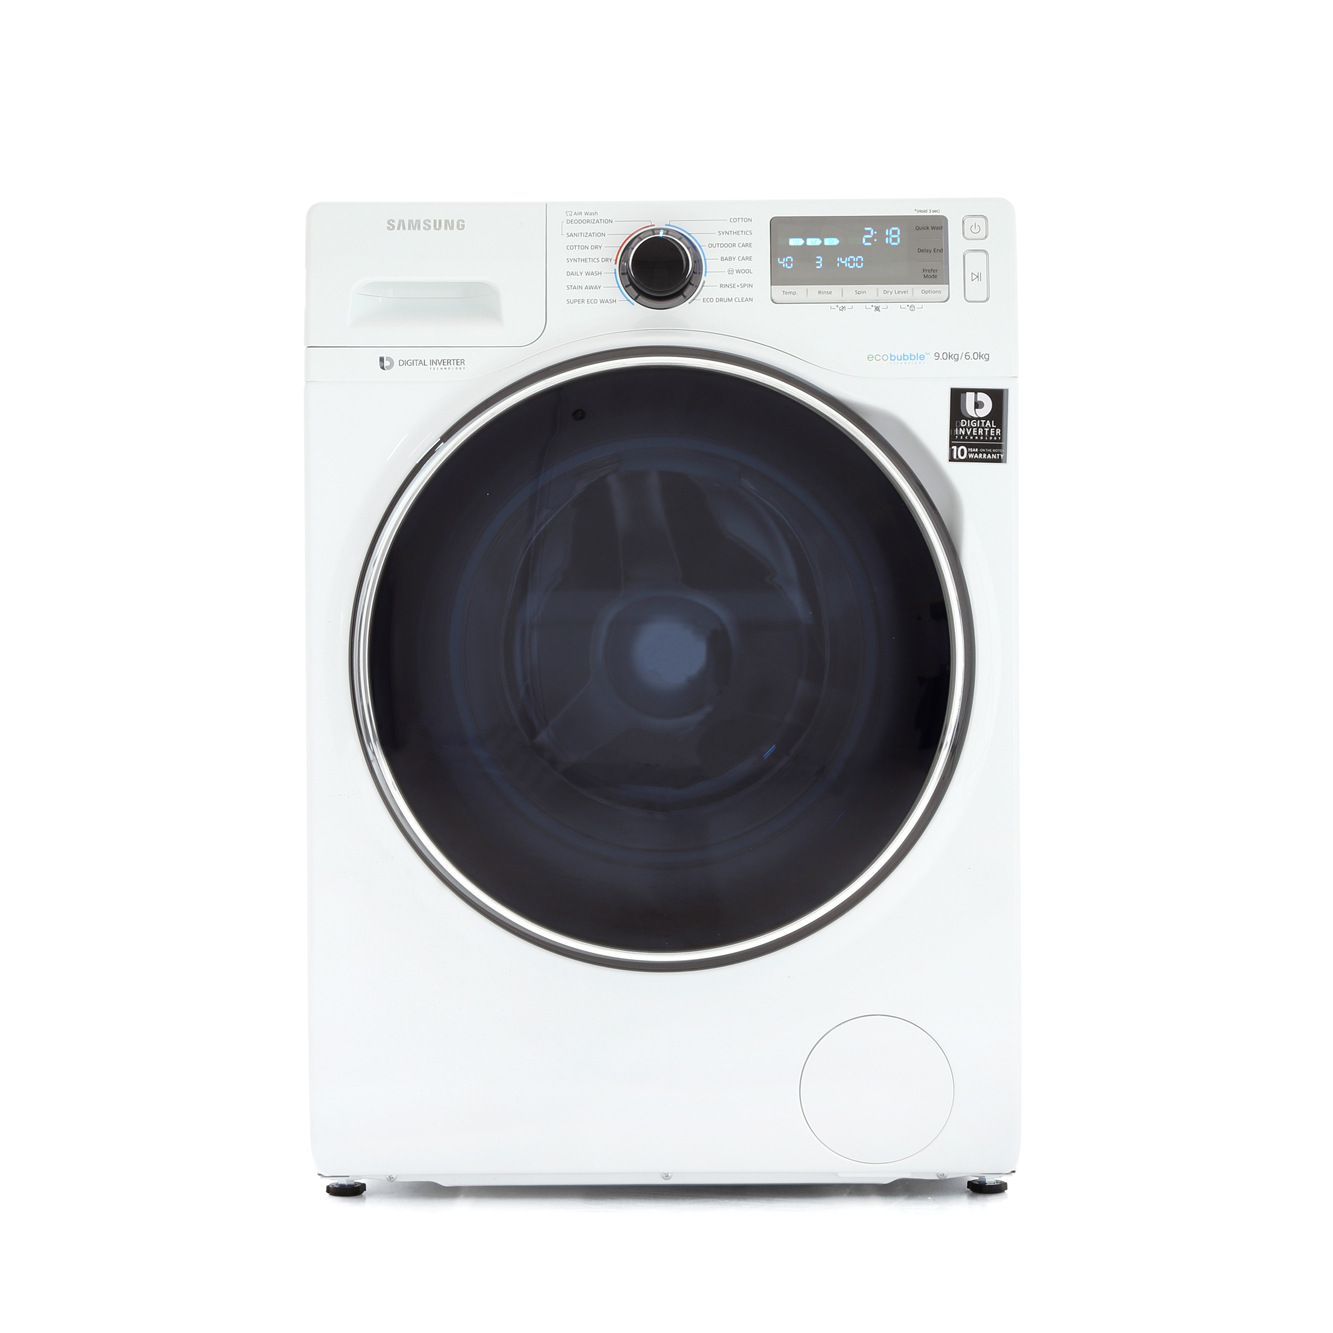 Buy Samsung Wd90j7400gw Washer Dryer White With Crystal